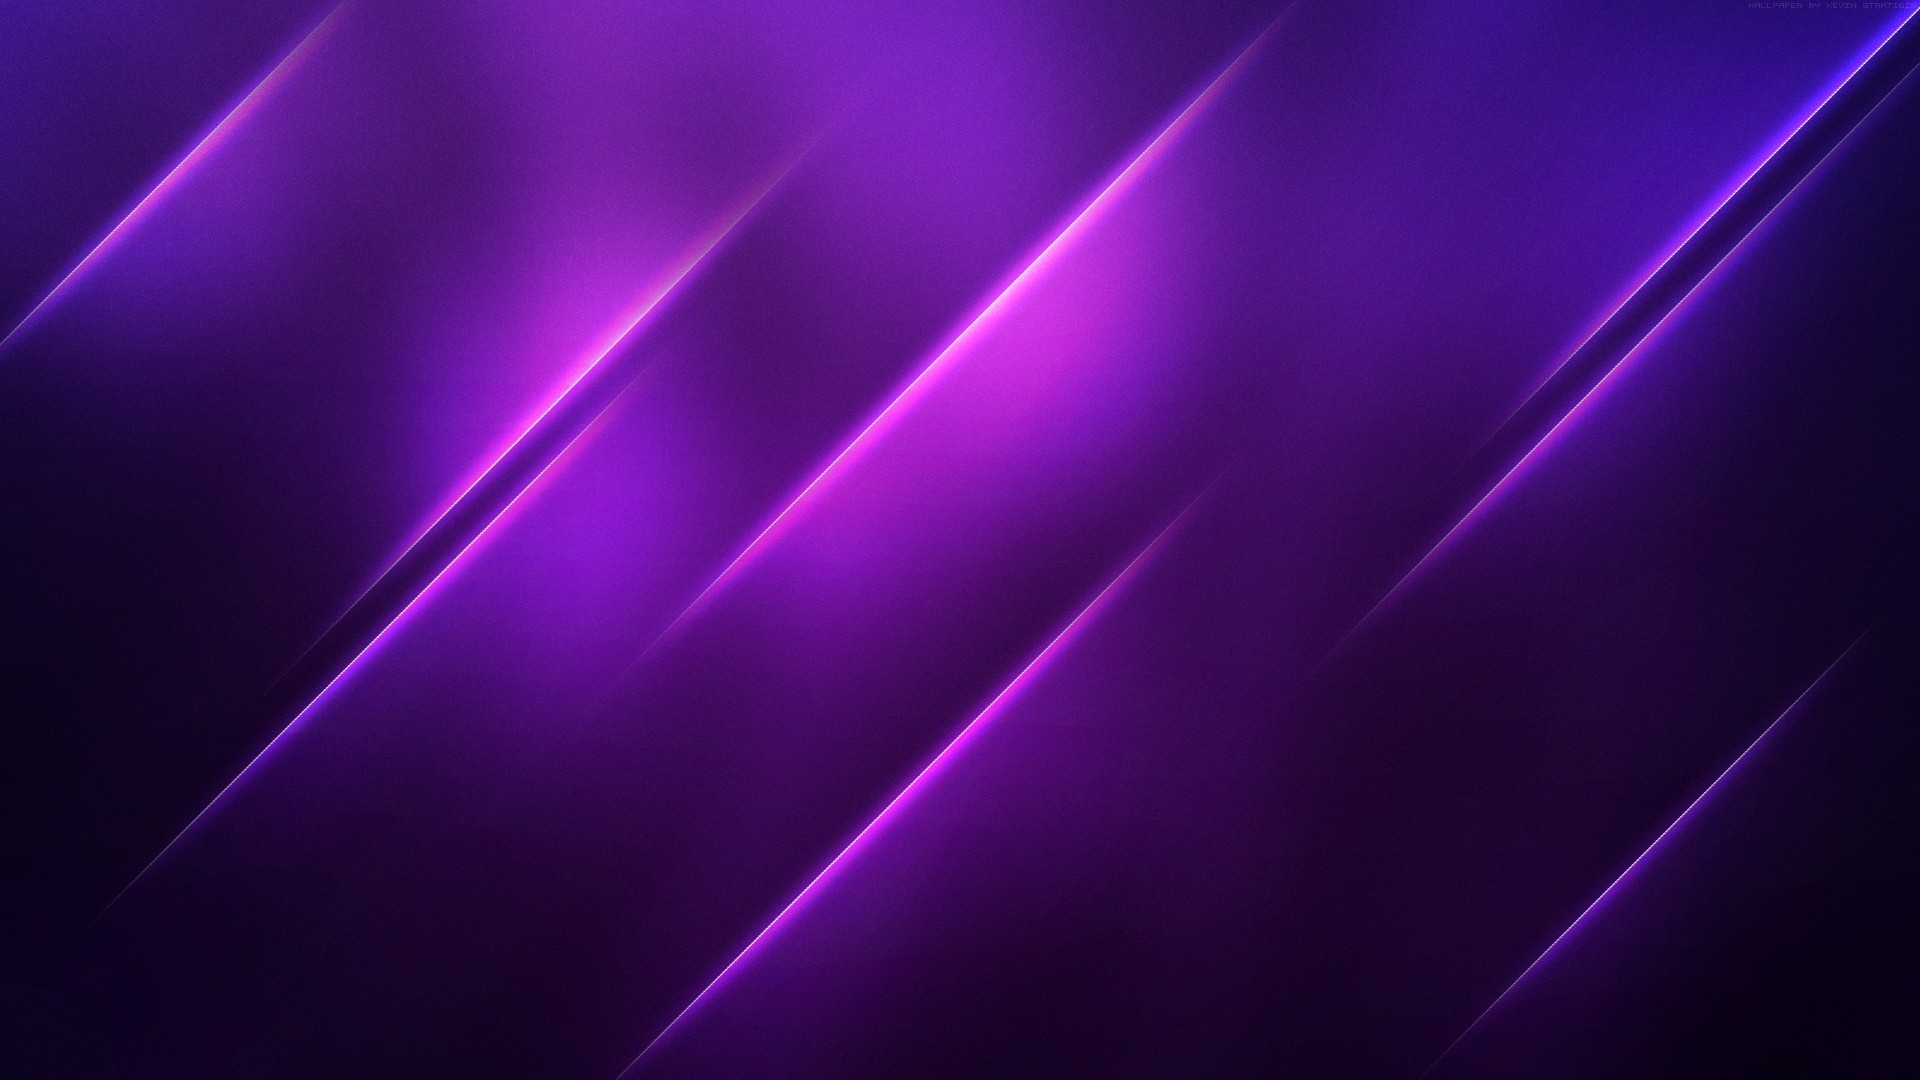 wallpaper Solid Purple Backgrounds hd wallpaper background desktop 1920x1080